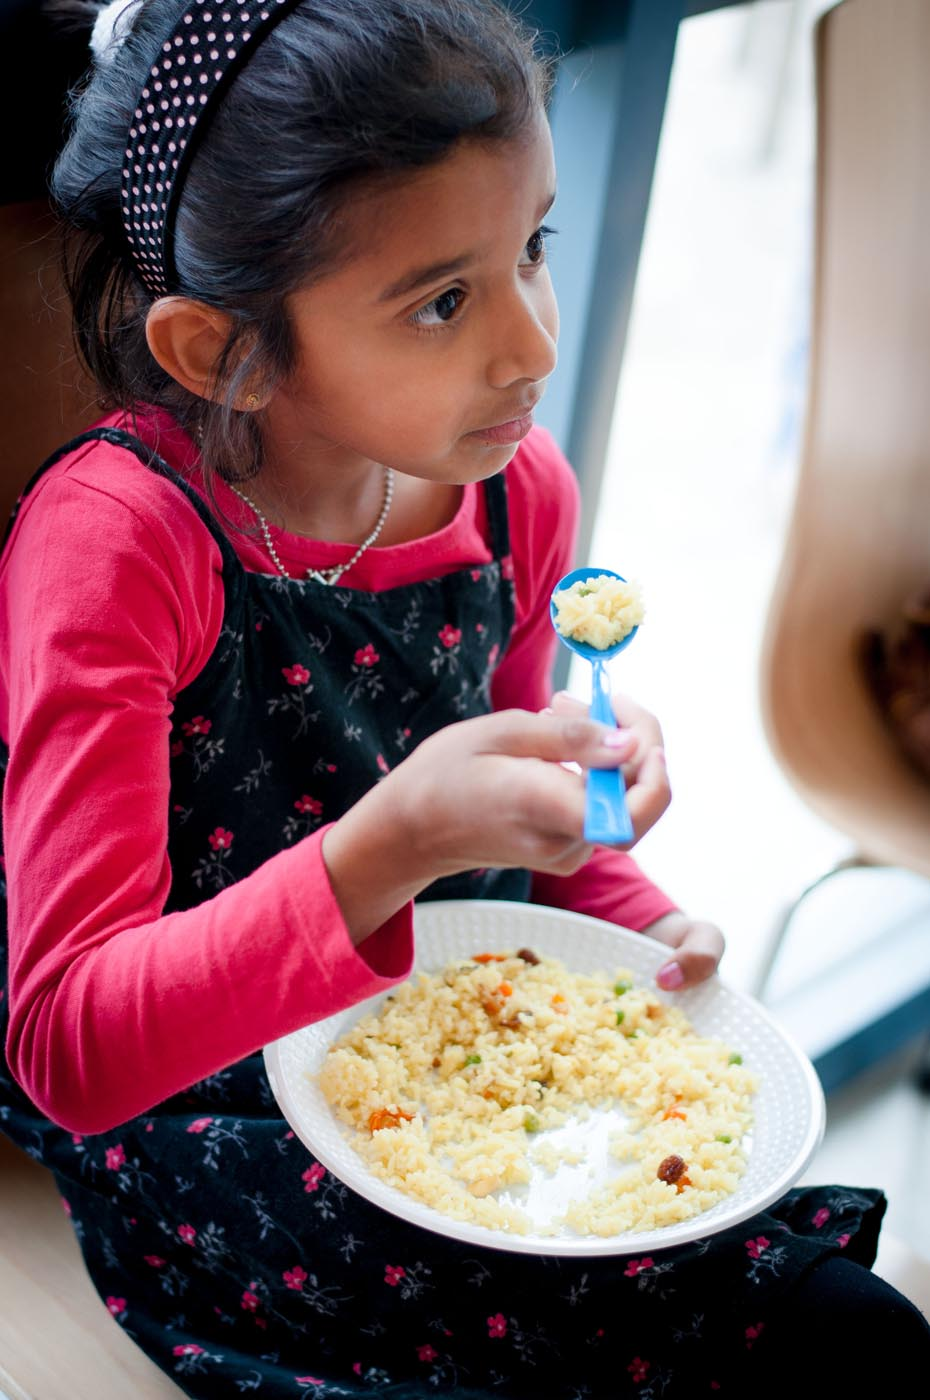 Photo showing a young girl sitting down eating some fried rice from a plate with a plastic spoon - click to view larger image